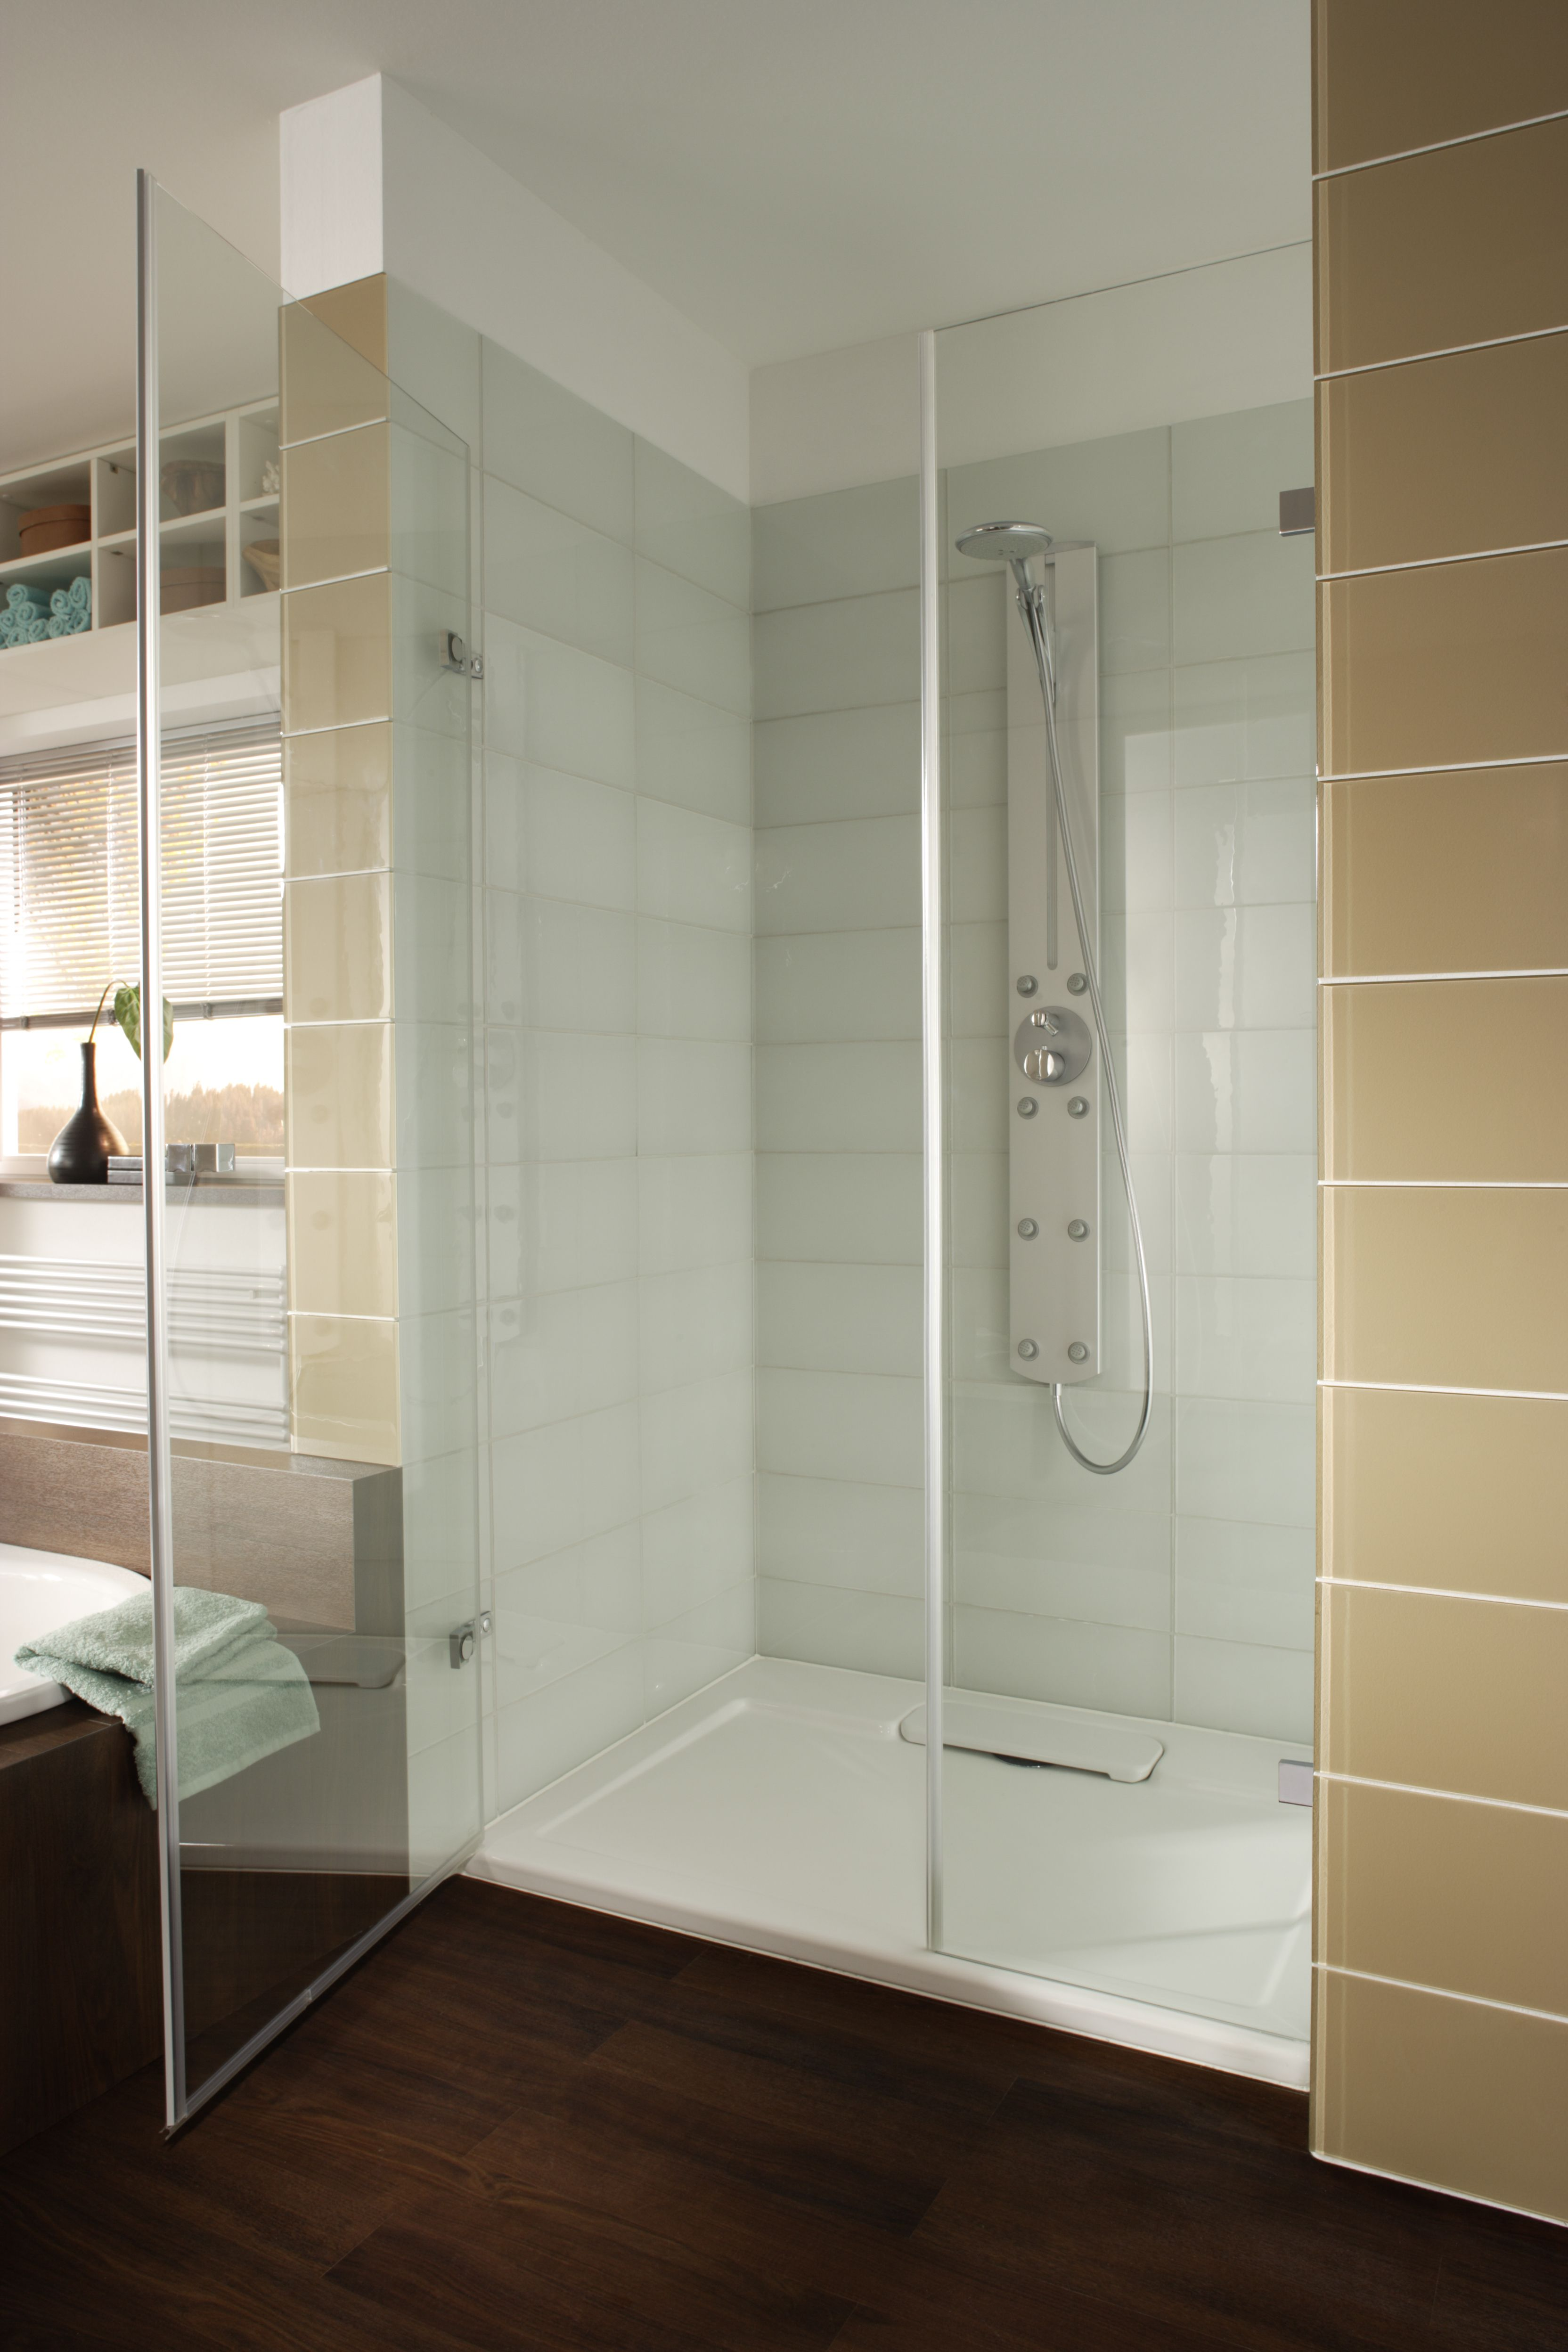 White Large Format Glass Tiled Shower With A Beige Glass Tile Border Master Bathroom Layout Beige Glass Tiles Bathroom Layout